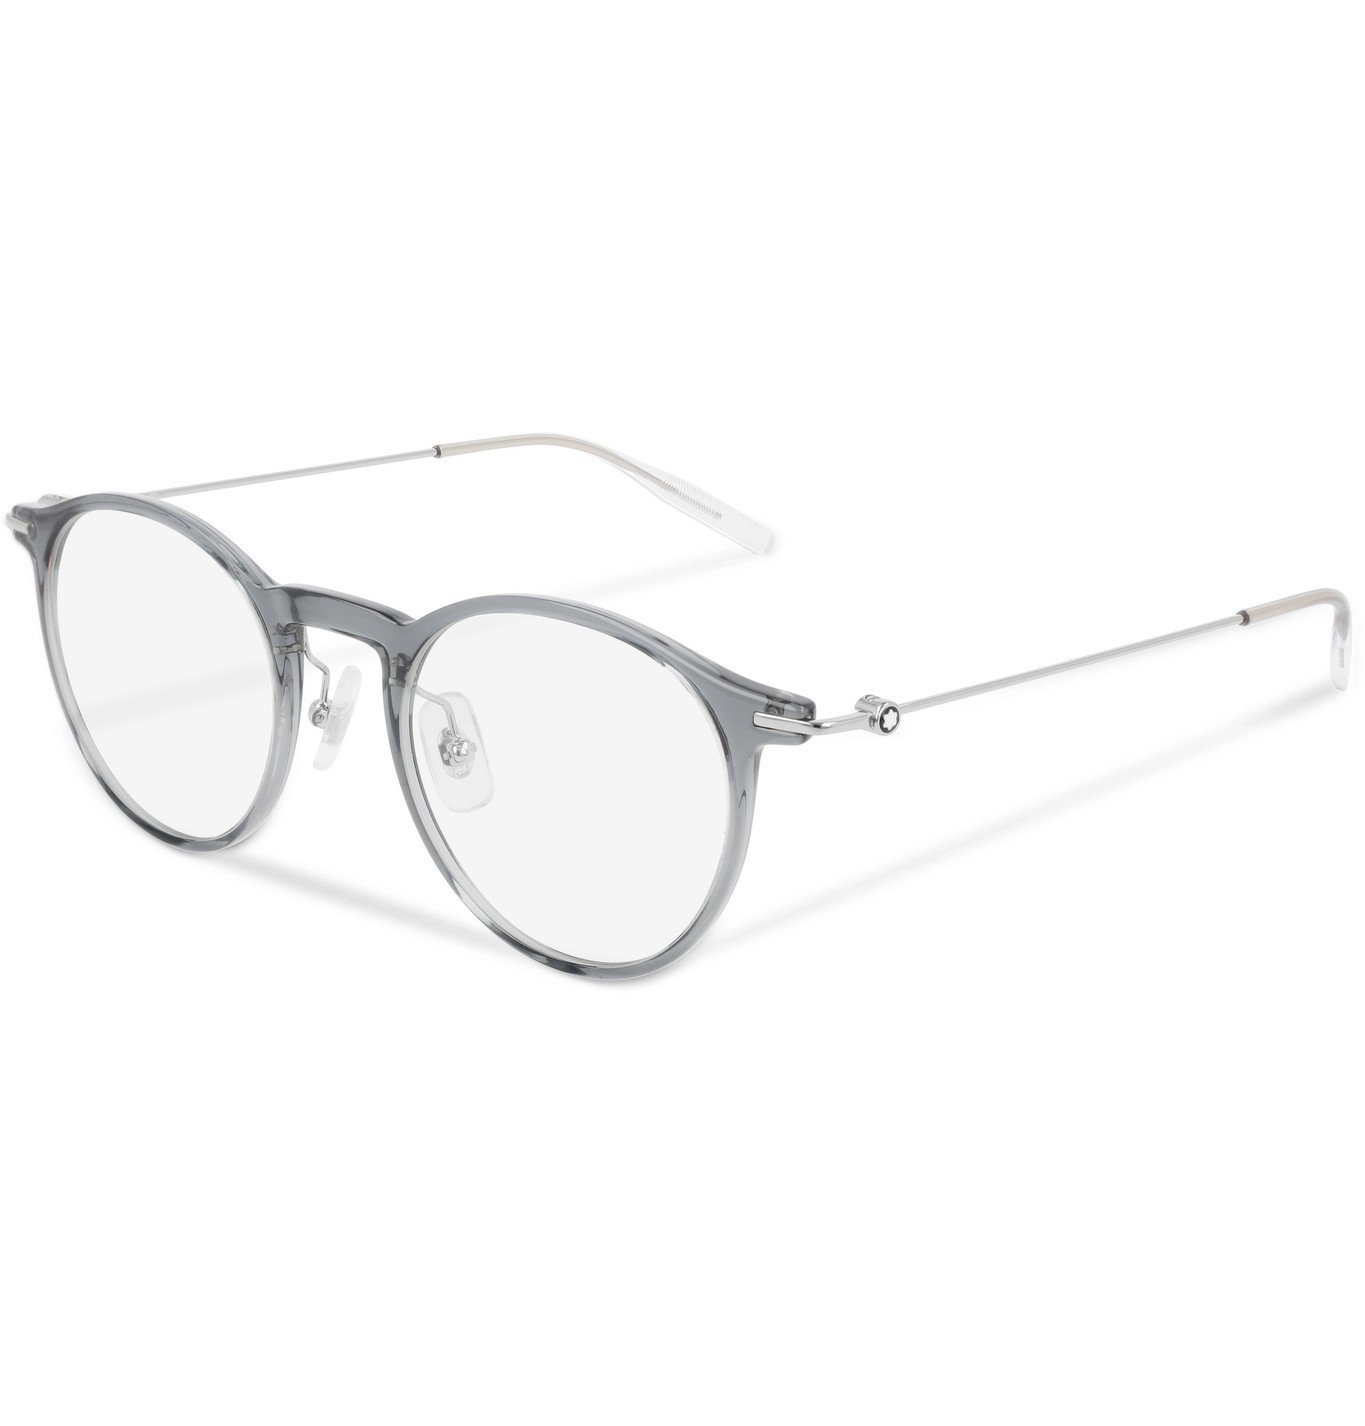 Montblanc - Round-Frame Silver-Tone and Acetate Optical Glasses - Unknown